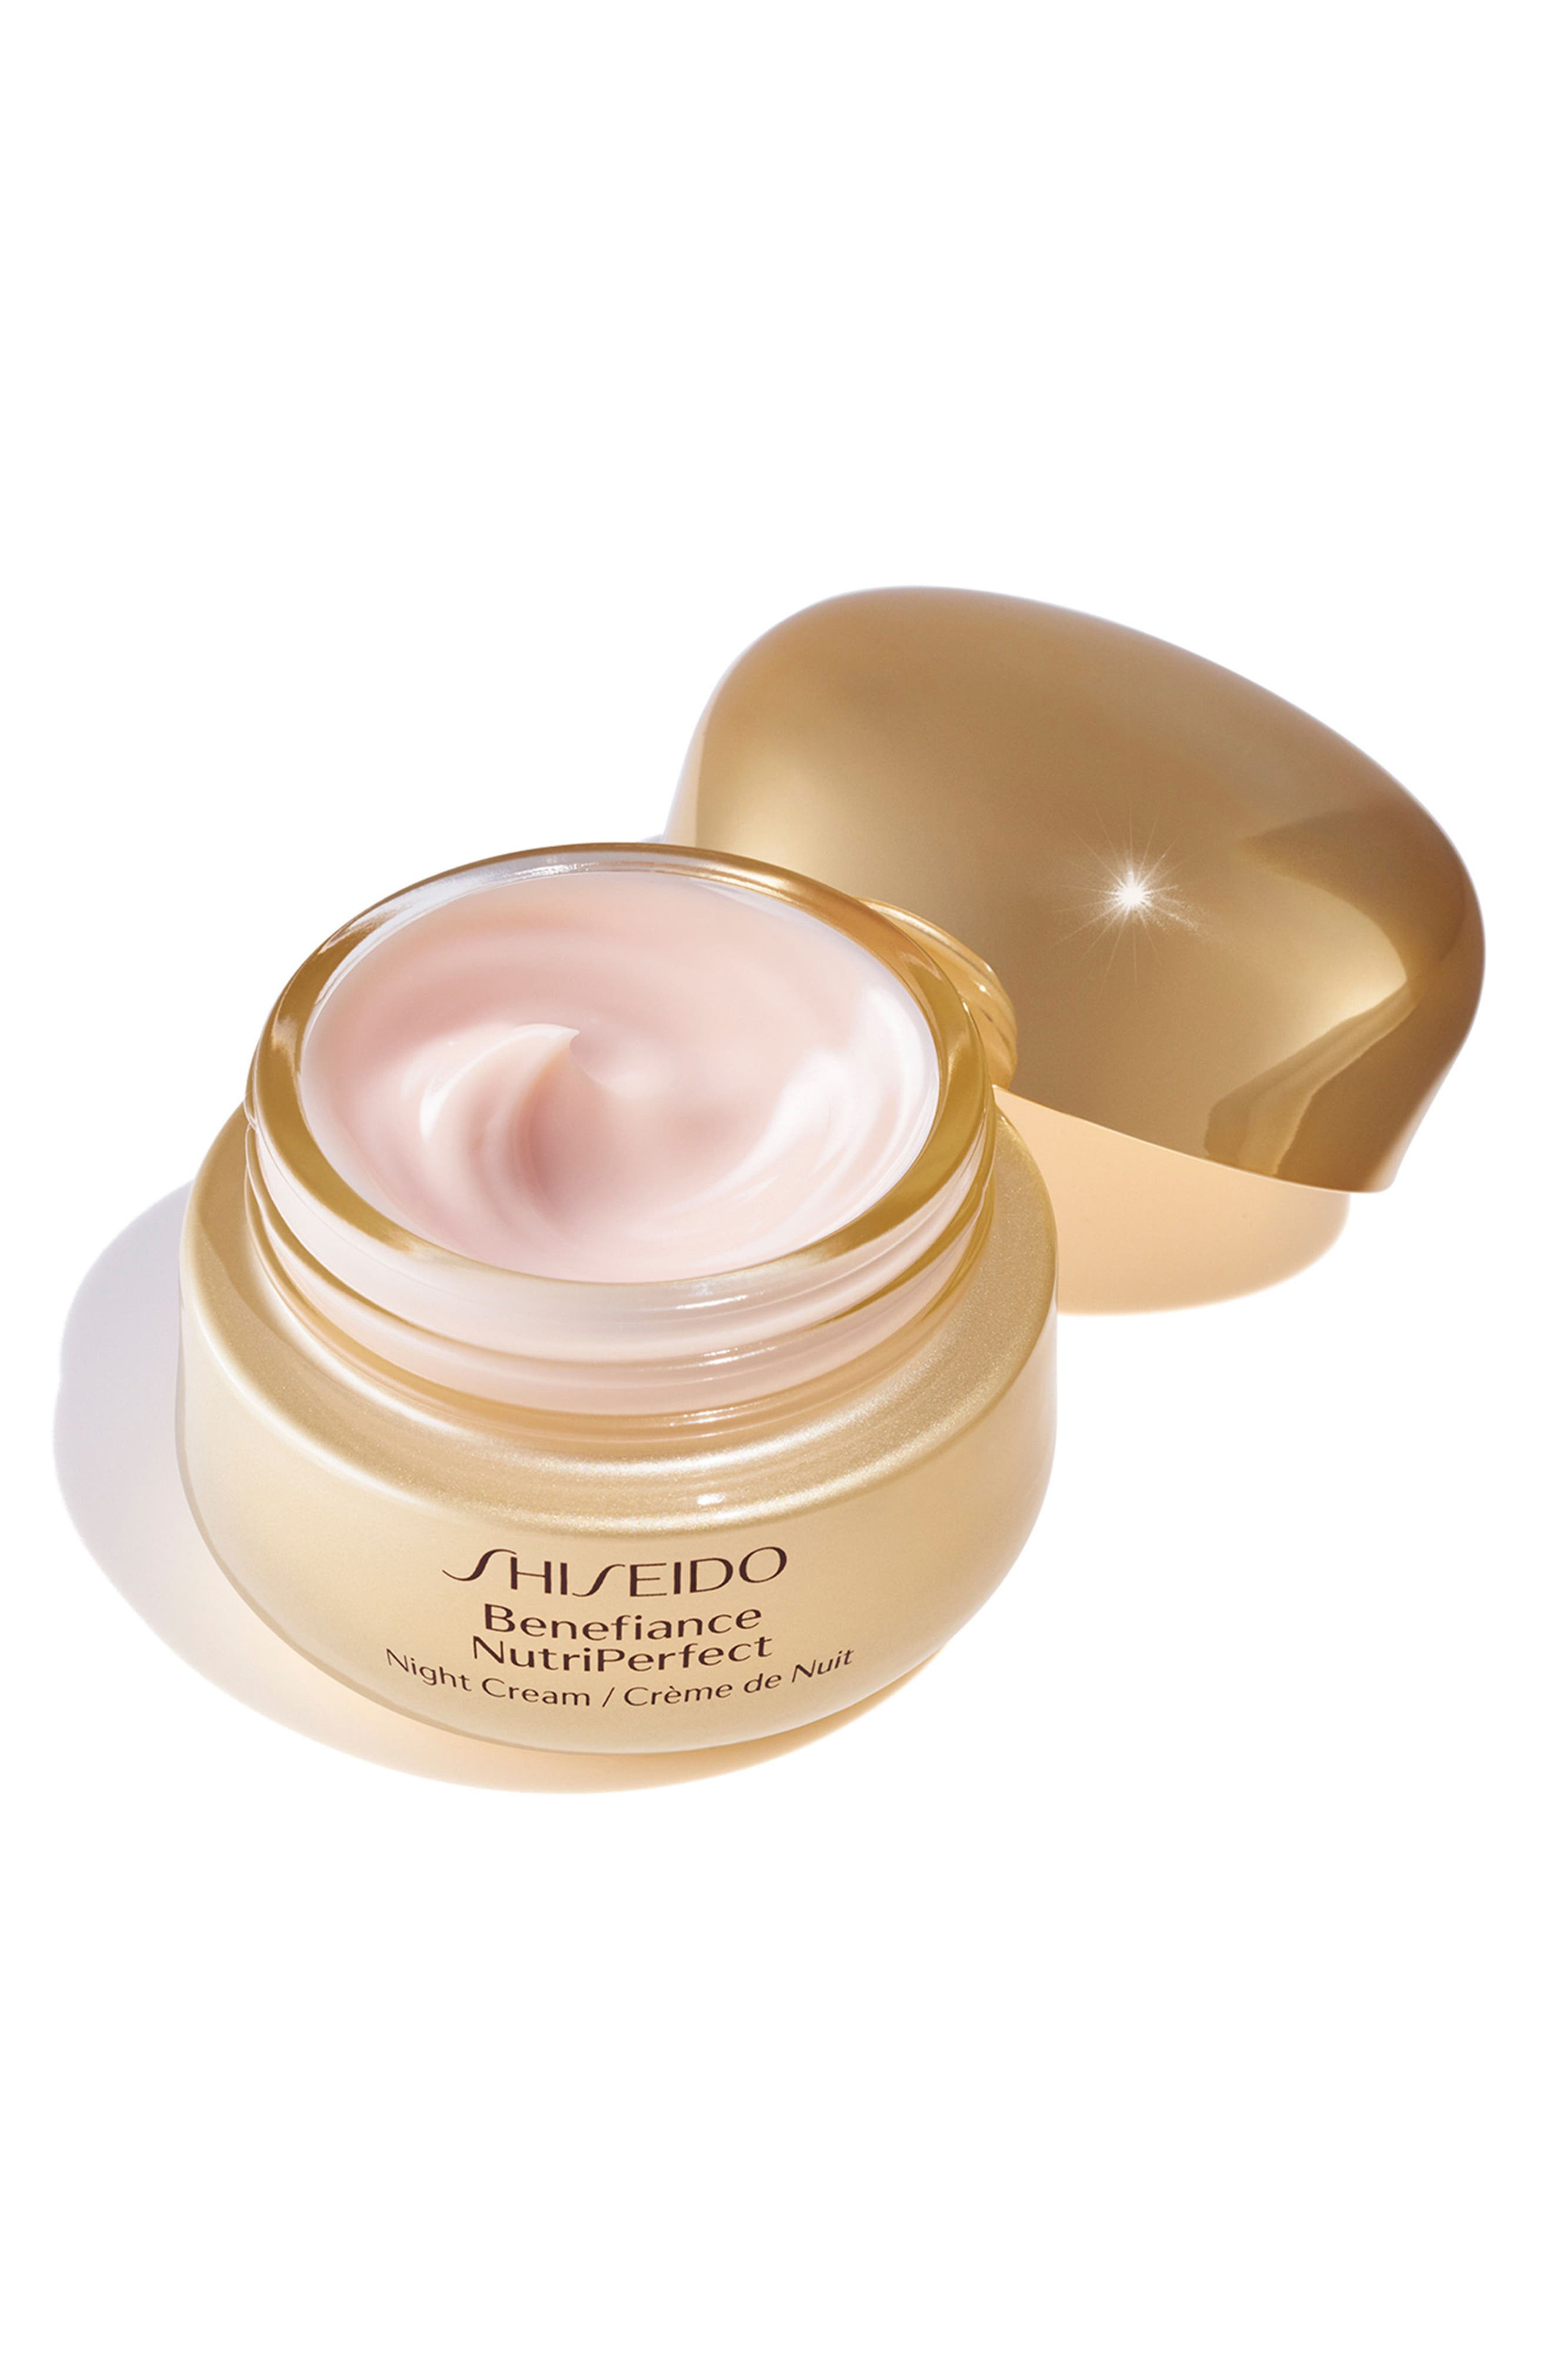 'Benefiance NutriPerfect' Night Cream,                             Alternate thumbnail 3, color,                             No Color